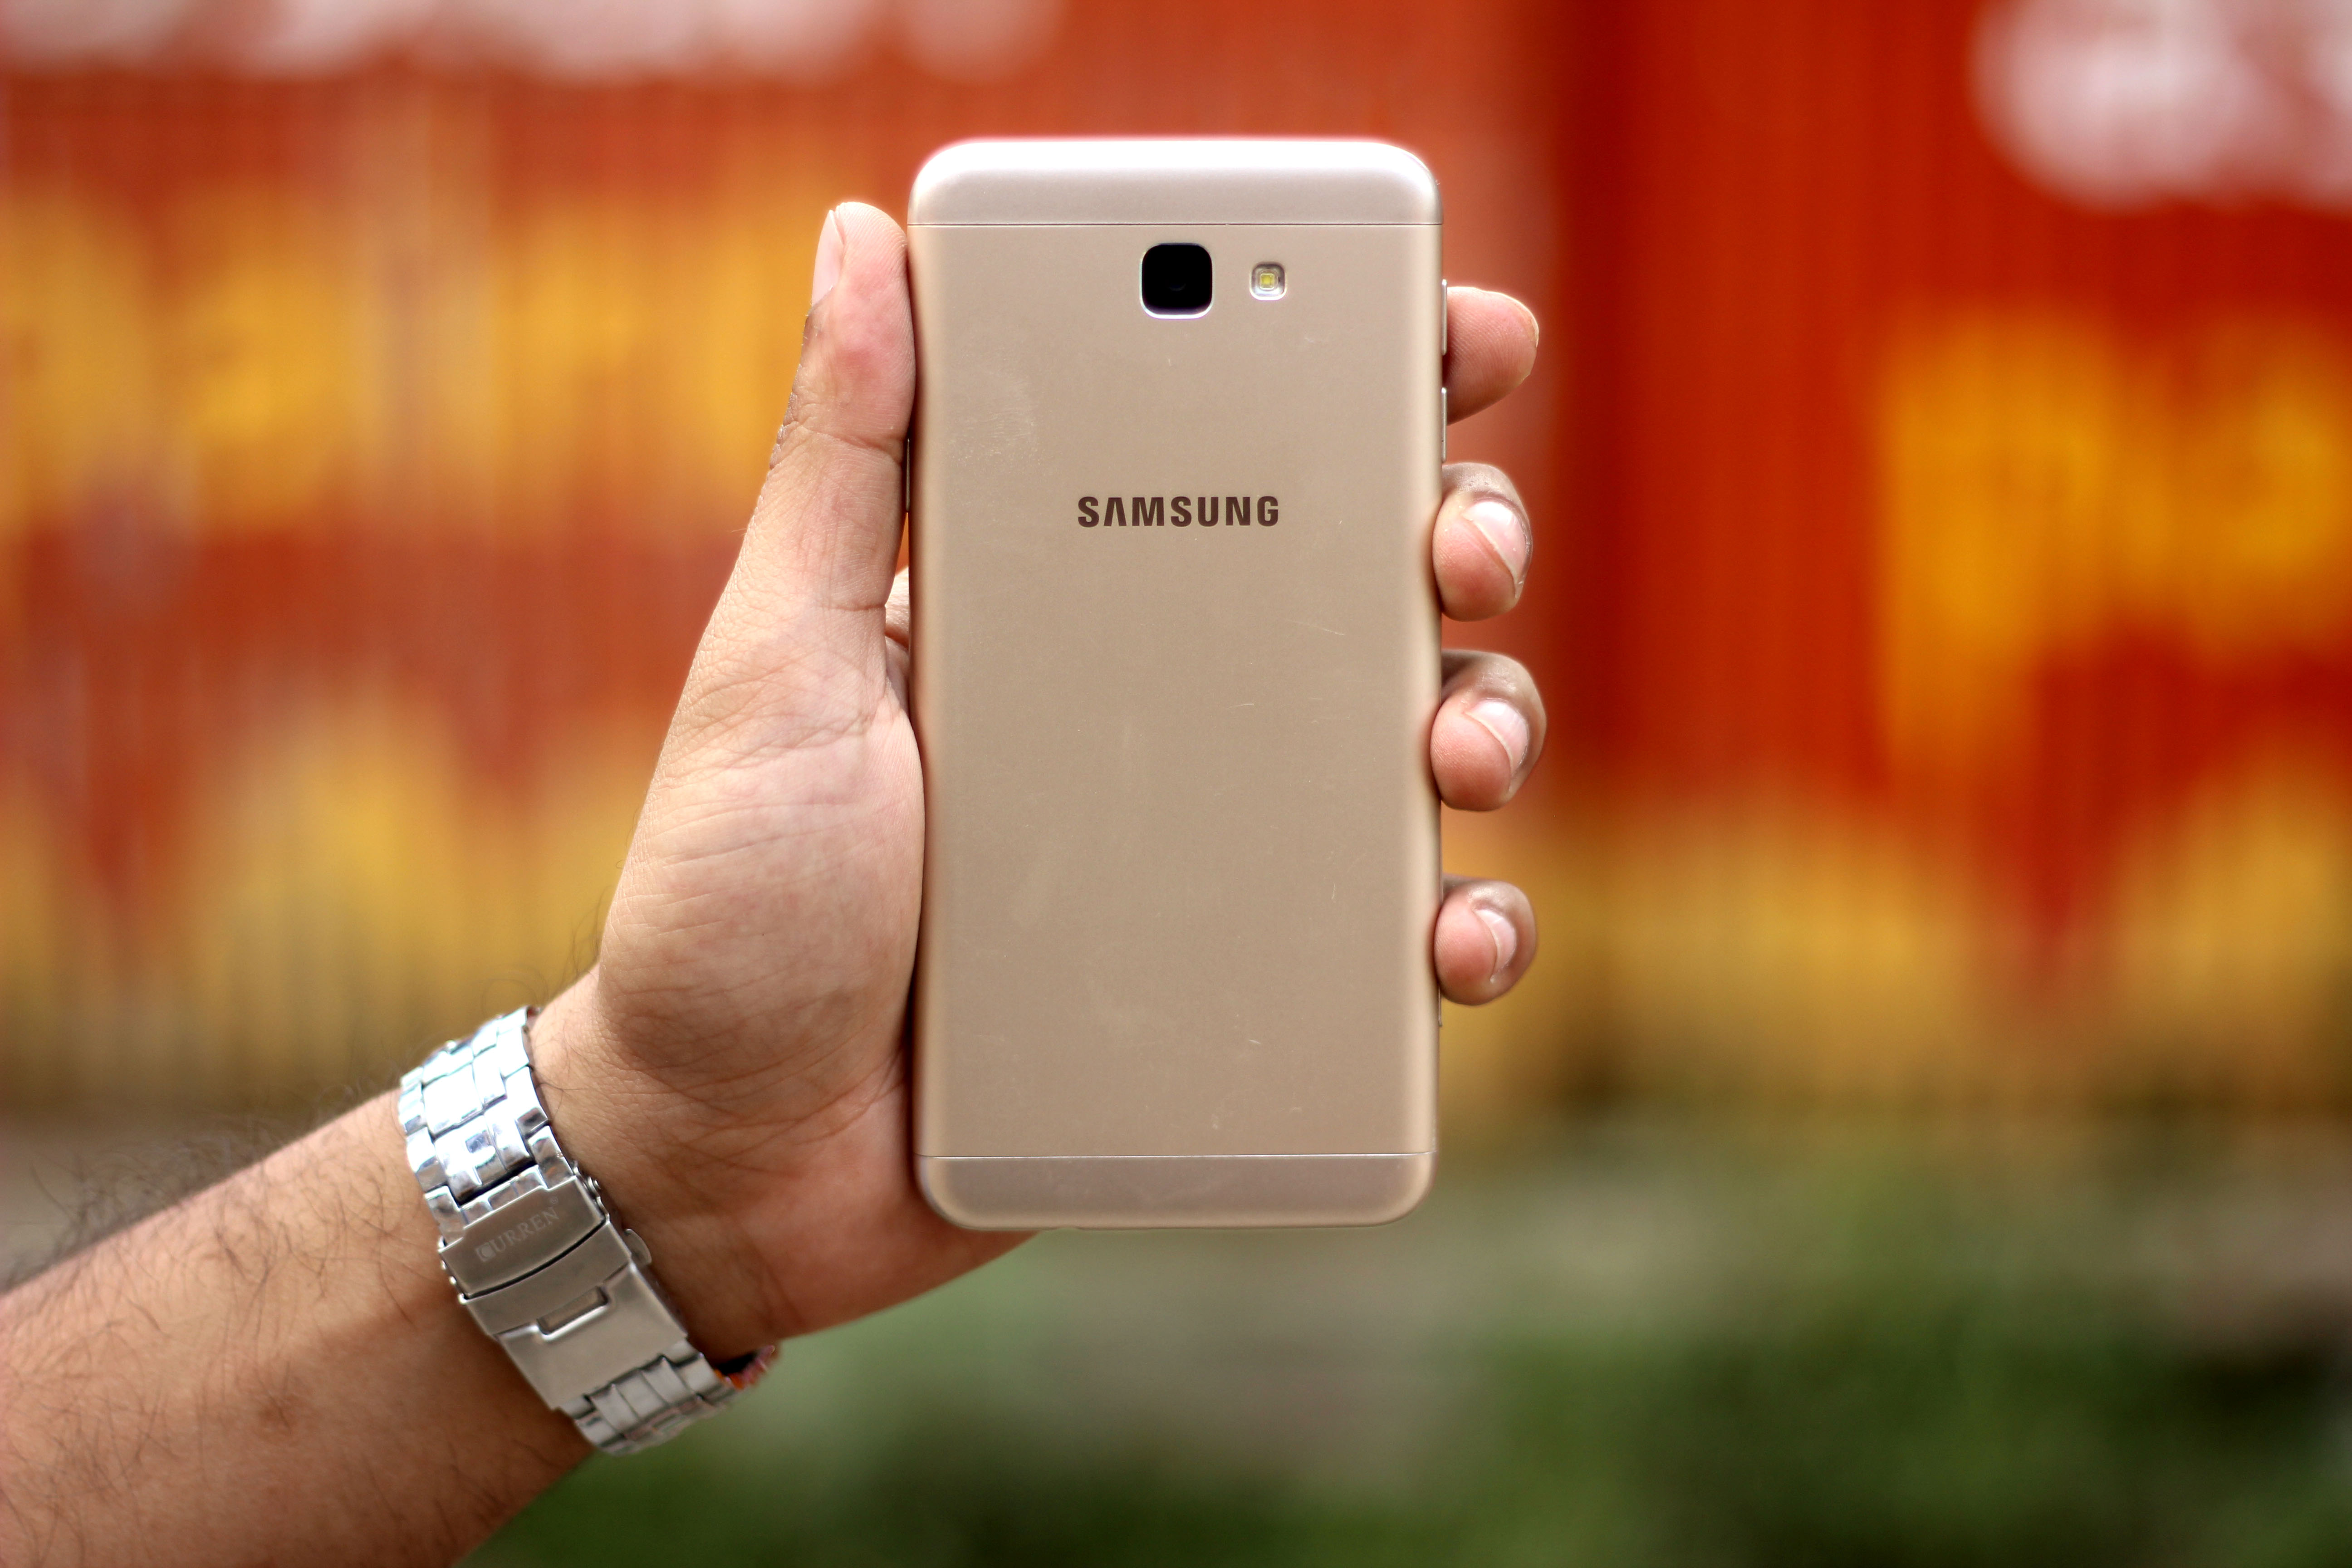 Tecno Ad Samsung Has Just Launched The Galaxy J5 Prime